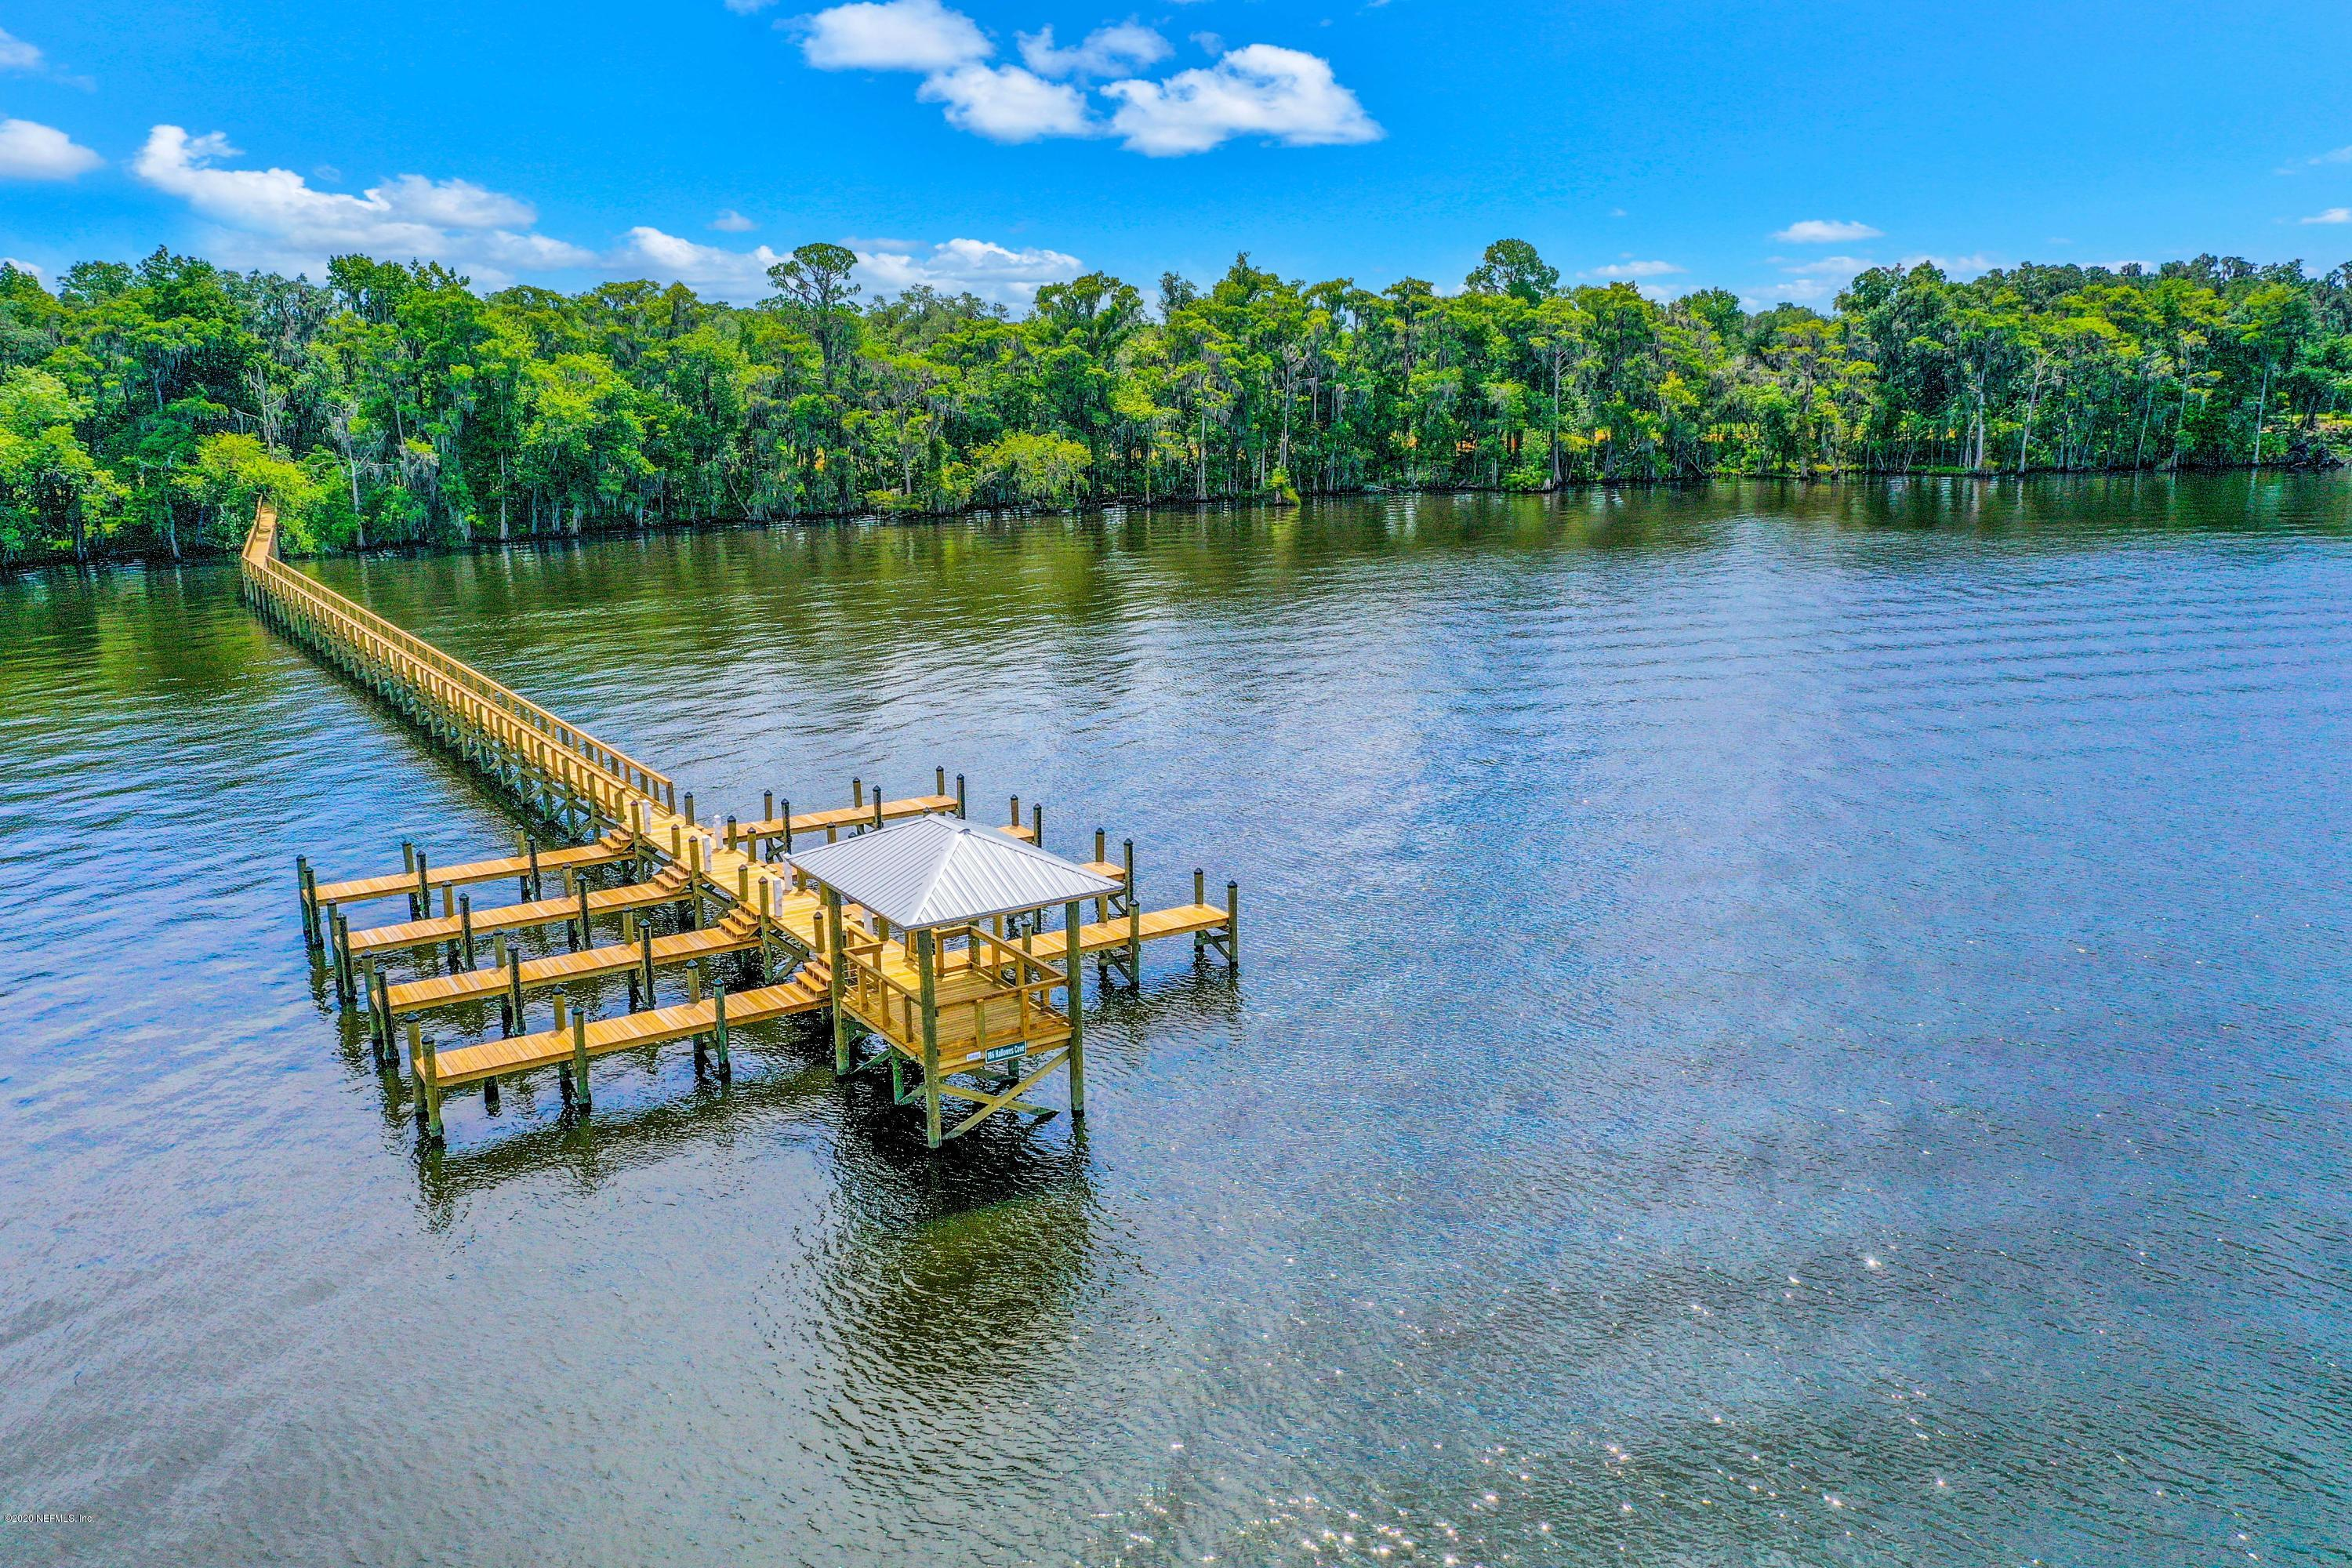 302 HALLOWES, ST JOHNS, FLORIDA 32259, ,Vacant land,For sale,HALLOWES,905189